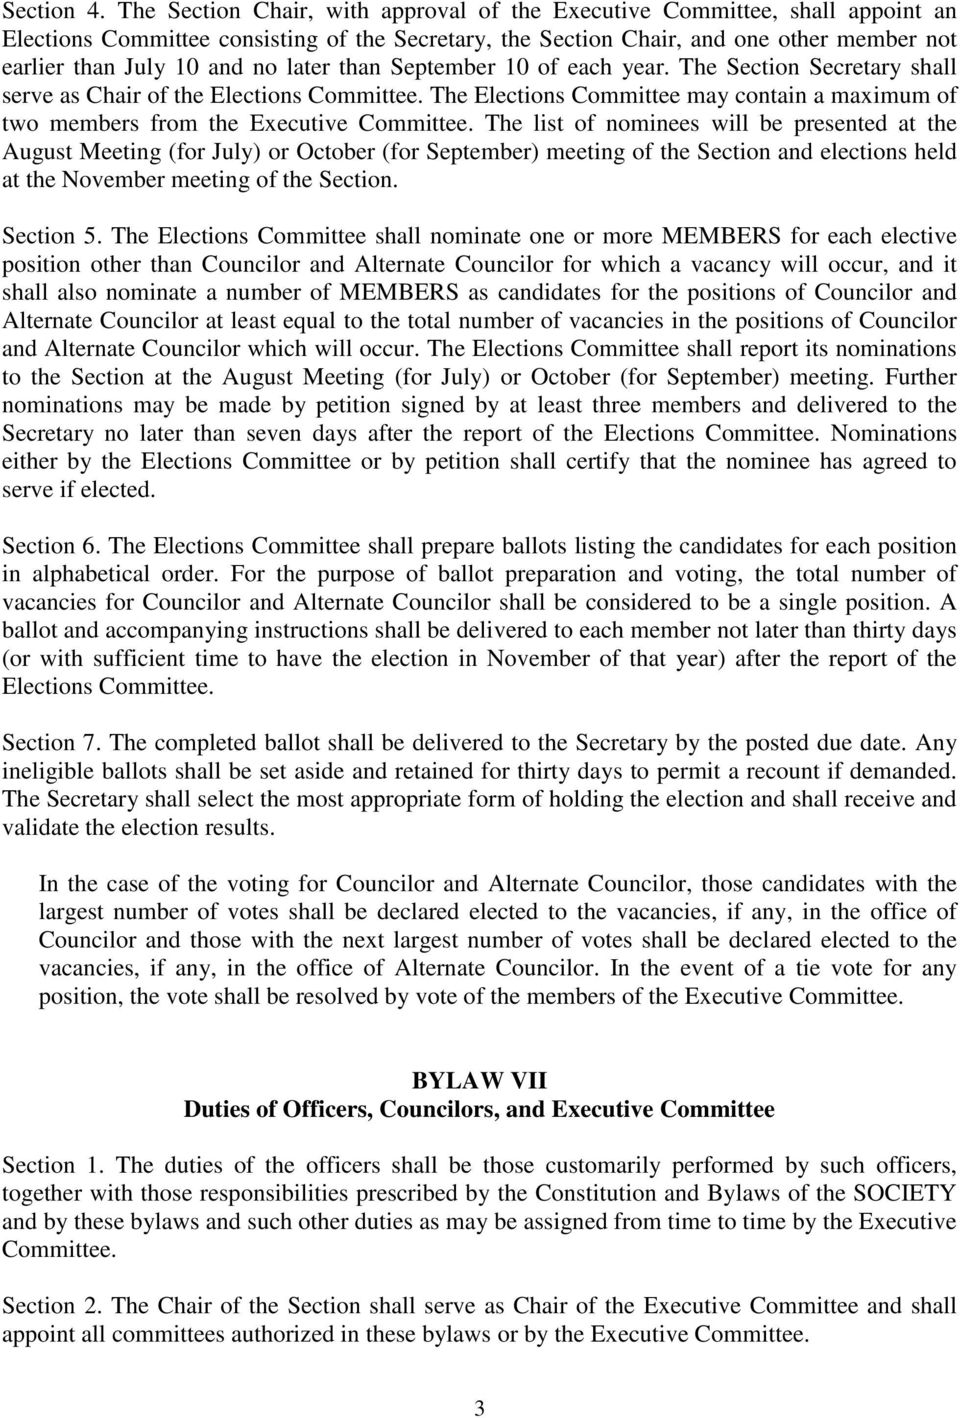 later than September 10 of each year. The Section Secretary shall serve as Chair of the Elections Committee. The Elections Committee may contain a maximum of two members from the Executive Committee.